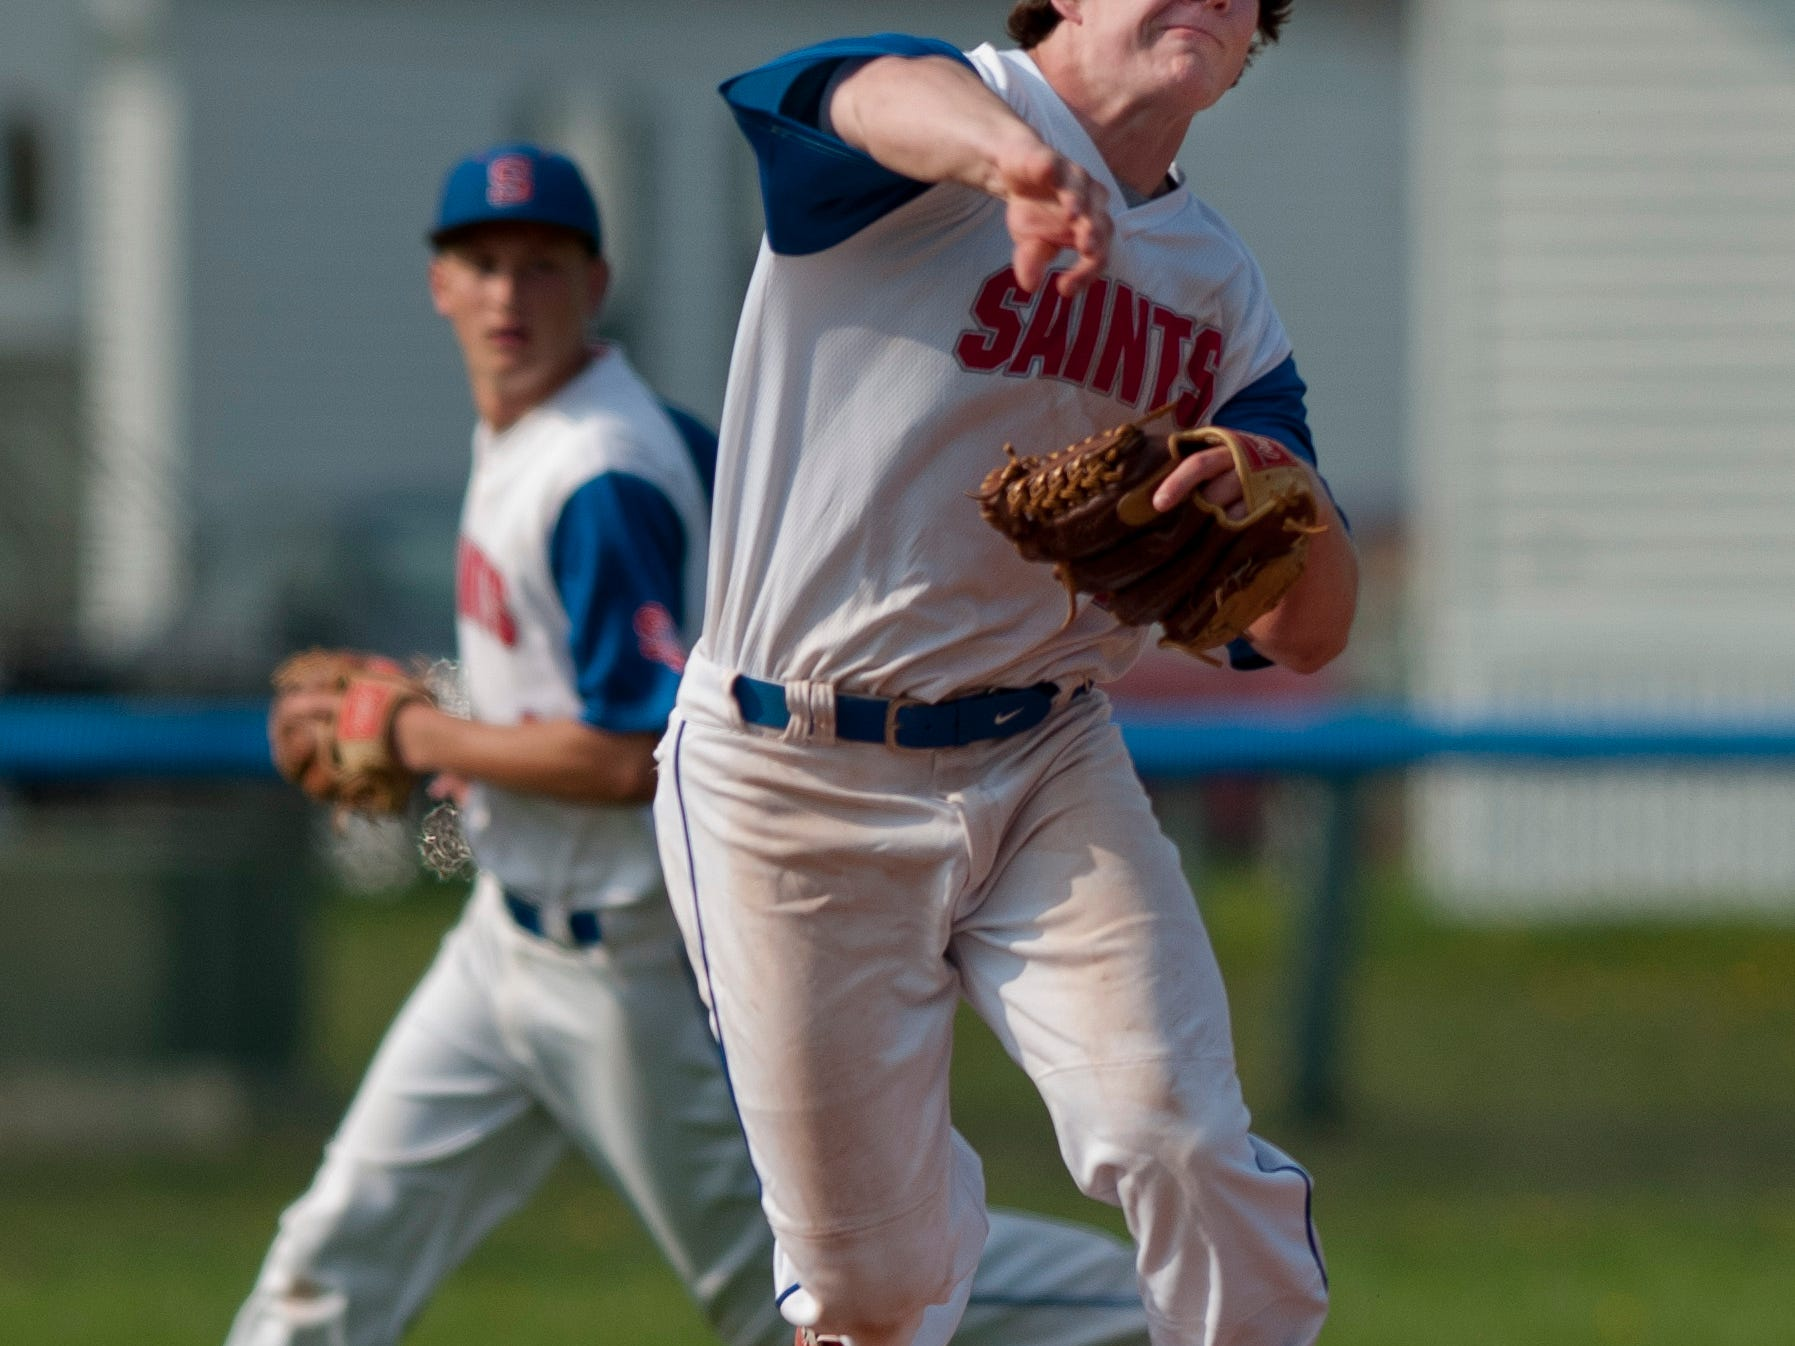 St. Clair's Jared Ambrose throws the ball to first during a baseball game Wednesday, May 6, 2015 at St. Clair High School.